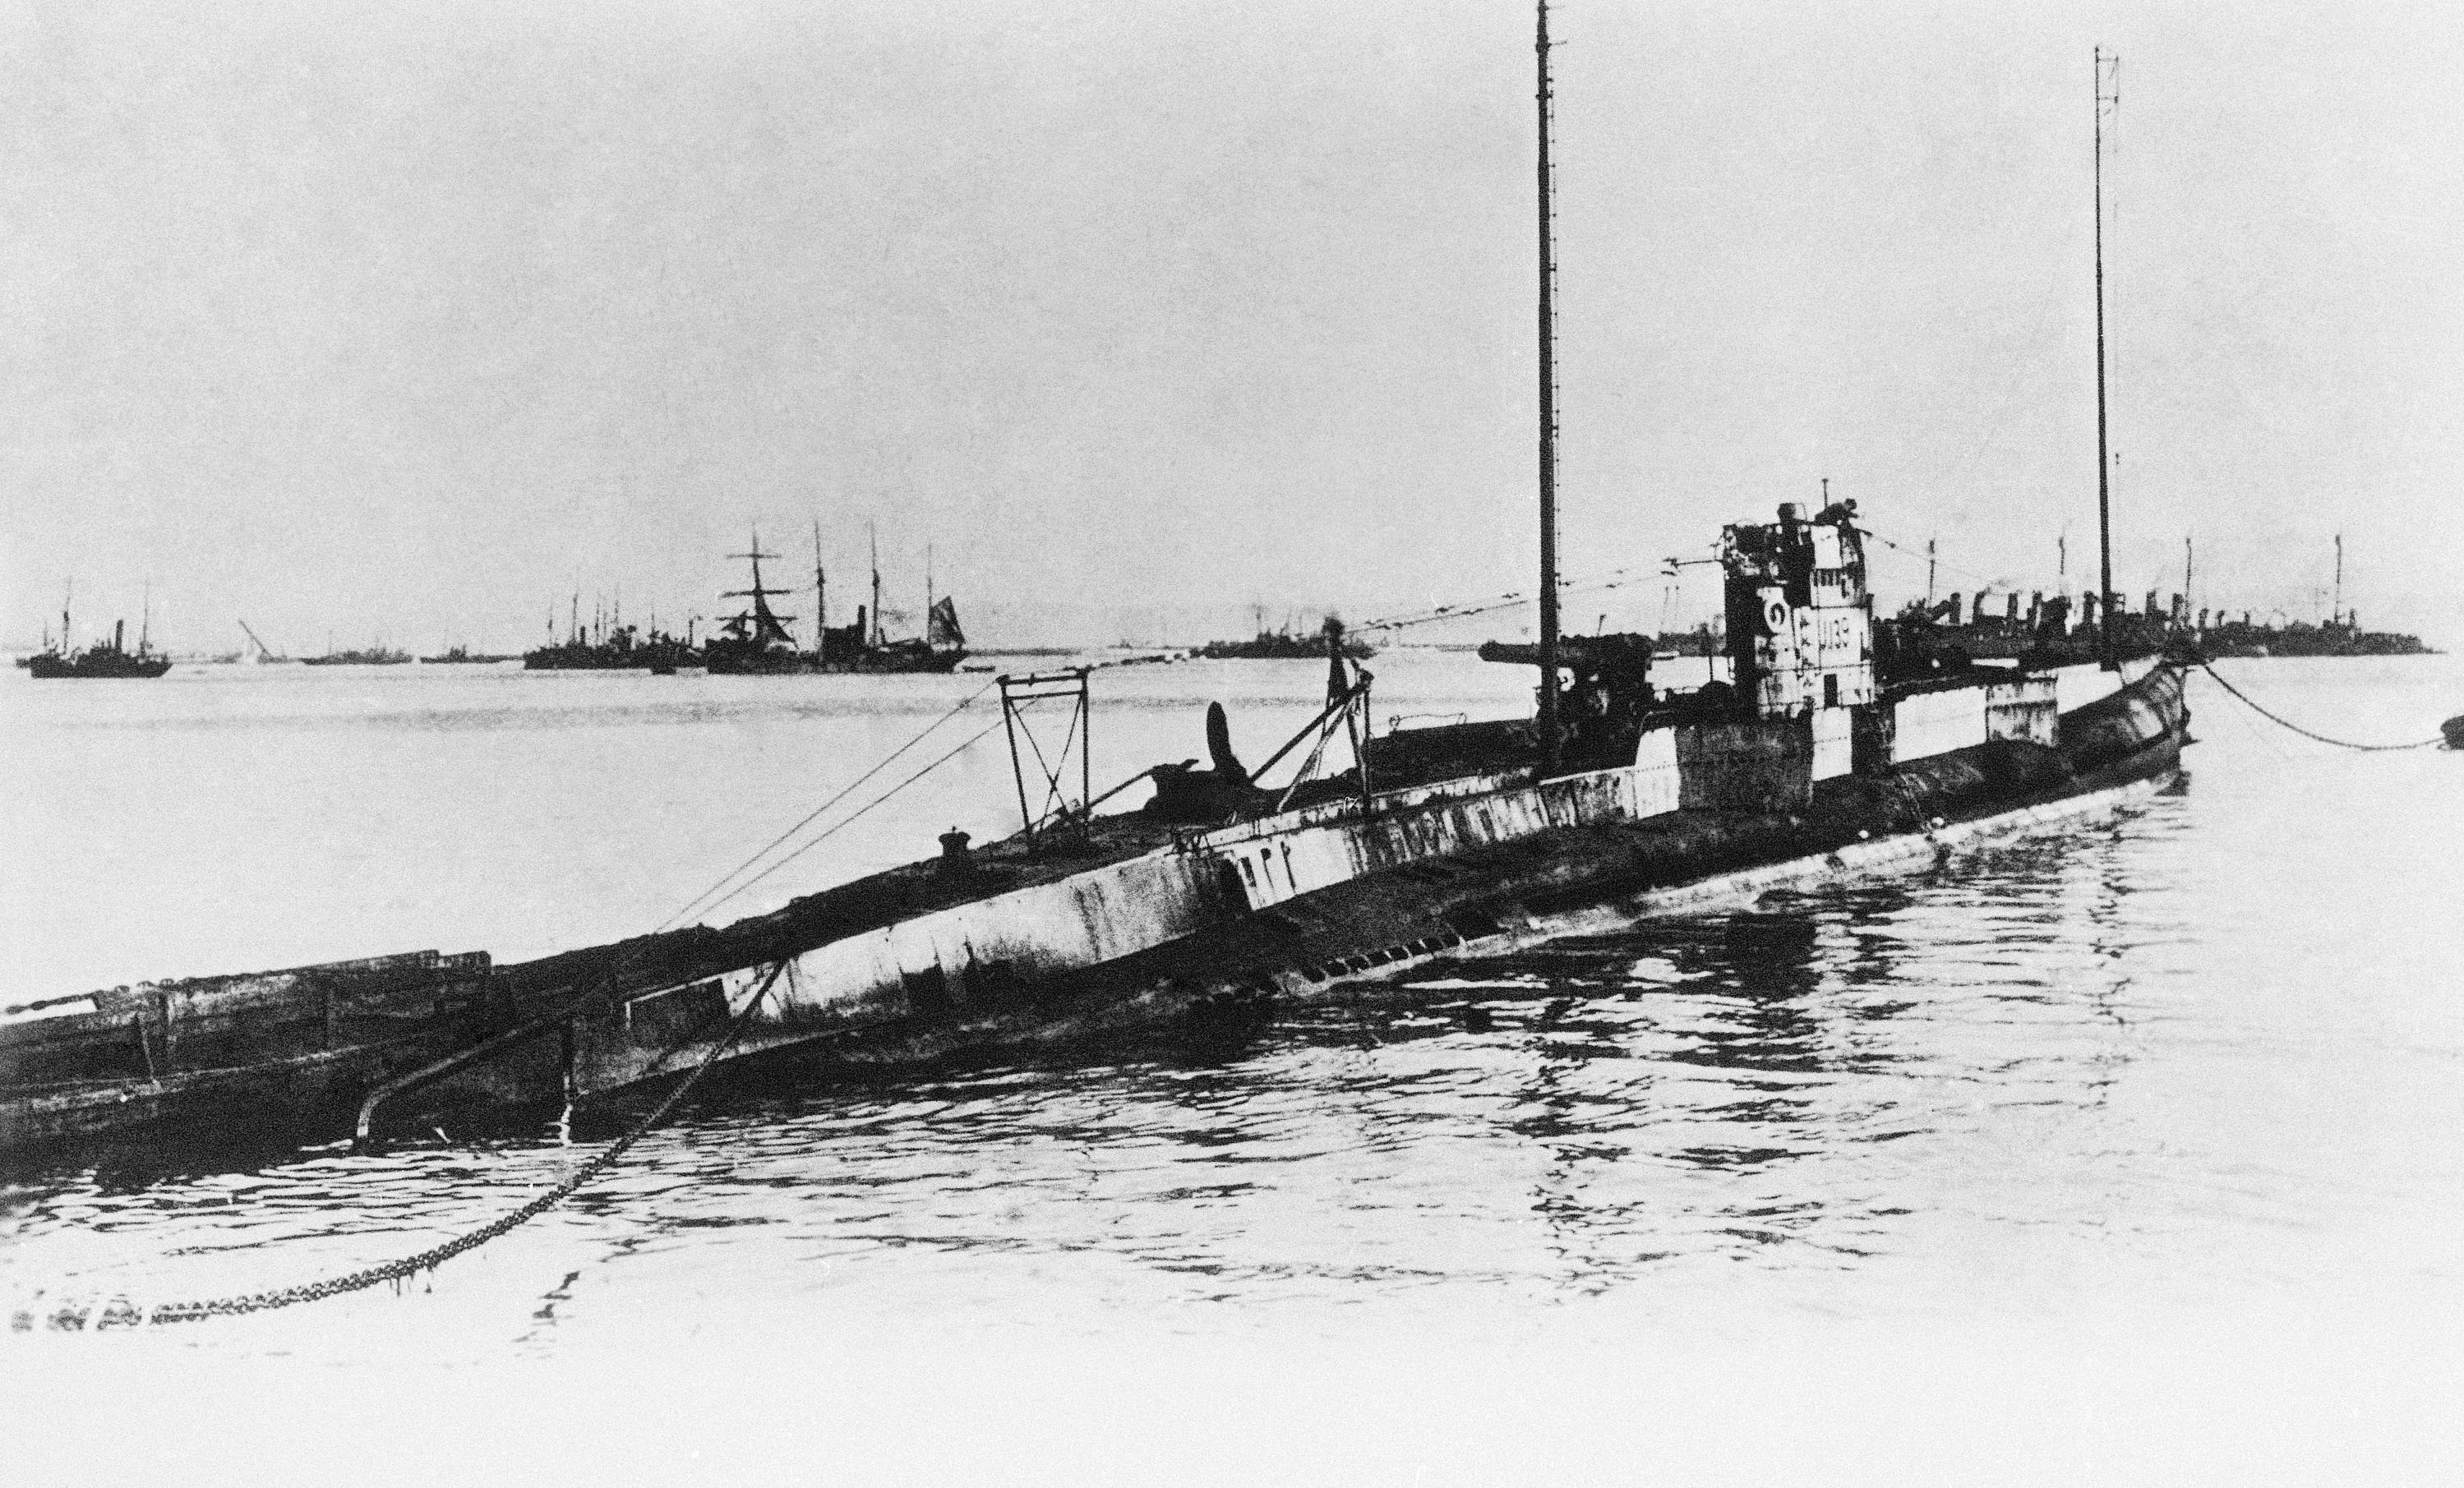 41 OF 100: In this undated file photo, the U-Boat 139 which sank the Lusitania in an unknown location. The British liner was sank on May 7, 1915, by a German submarine off the southern coast of Ireland. About 1,150 men, women and children, perished, 114 of which were Americans. Among those Americans who perished were Charles Frohman, Alfred G. Vanderbilt and Elbert Hubbard.